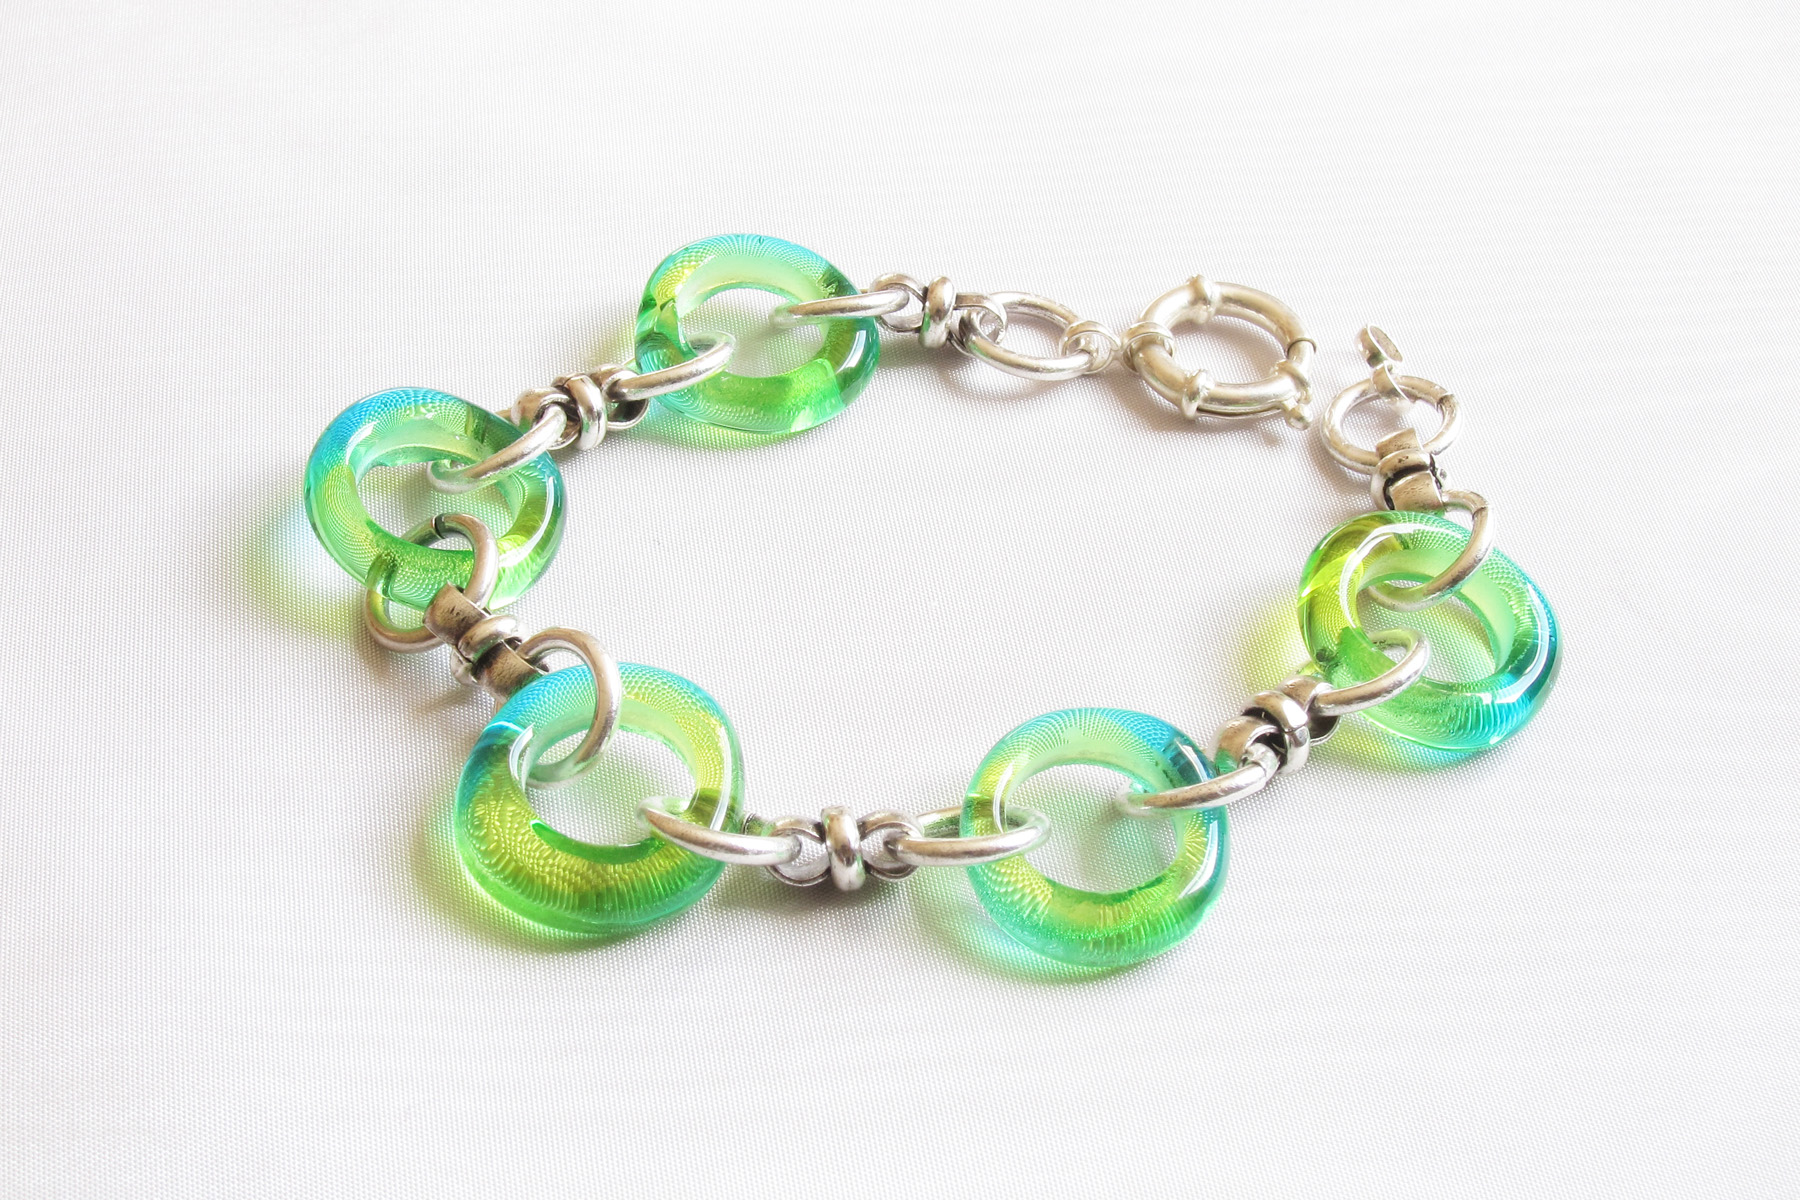 Green and Teal Hoop Bracelet